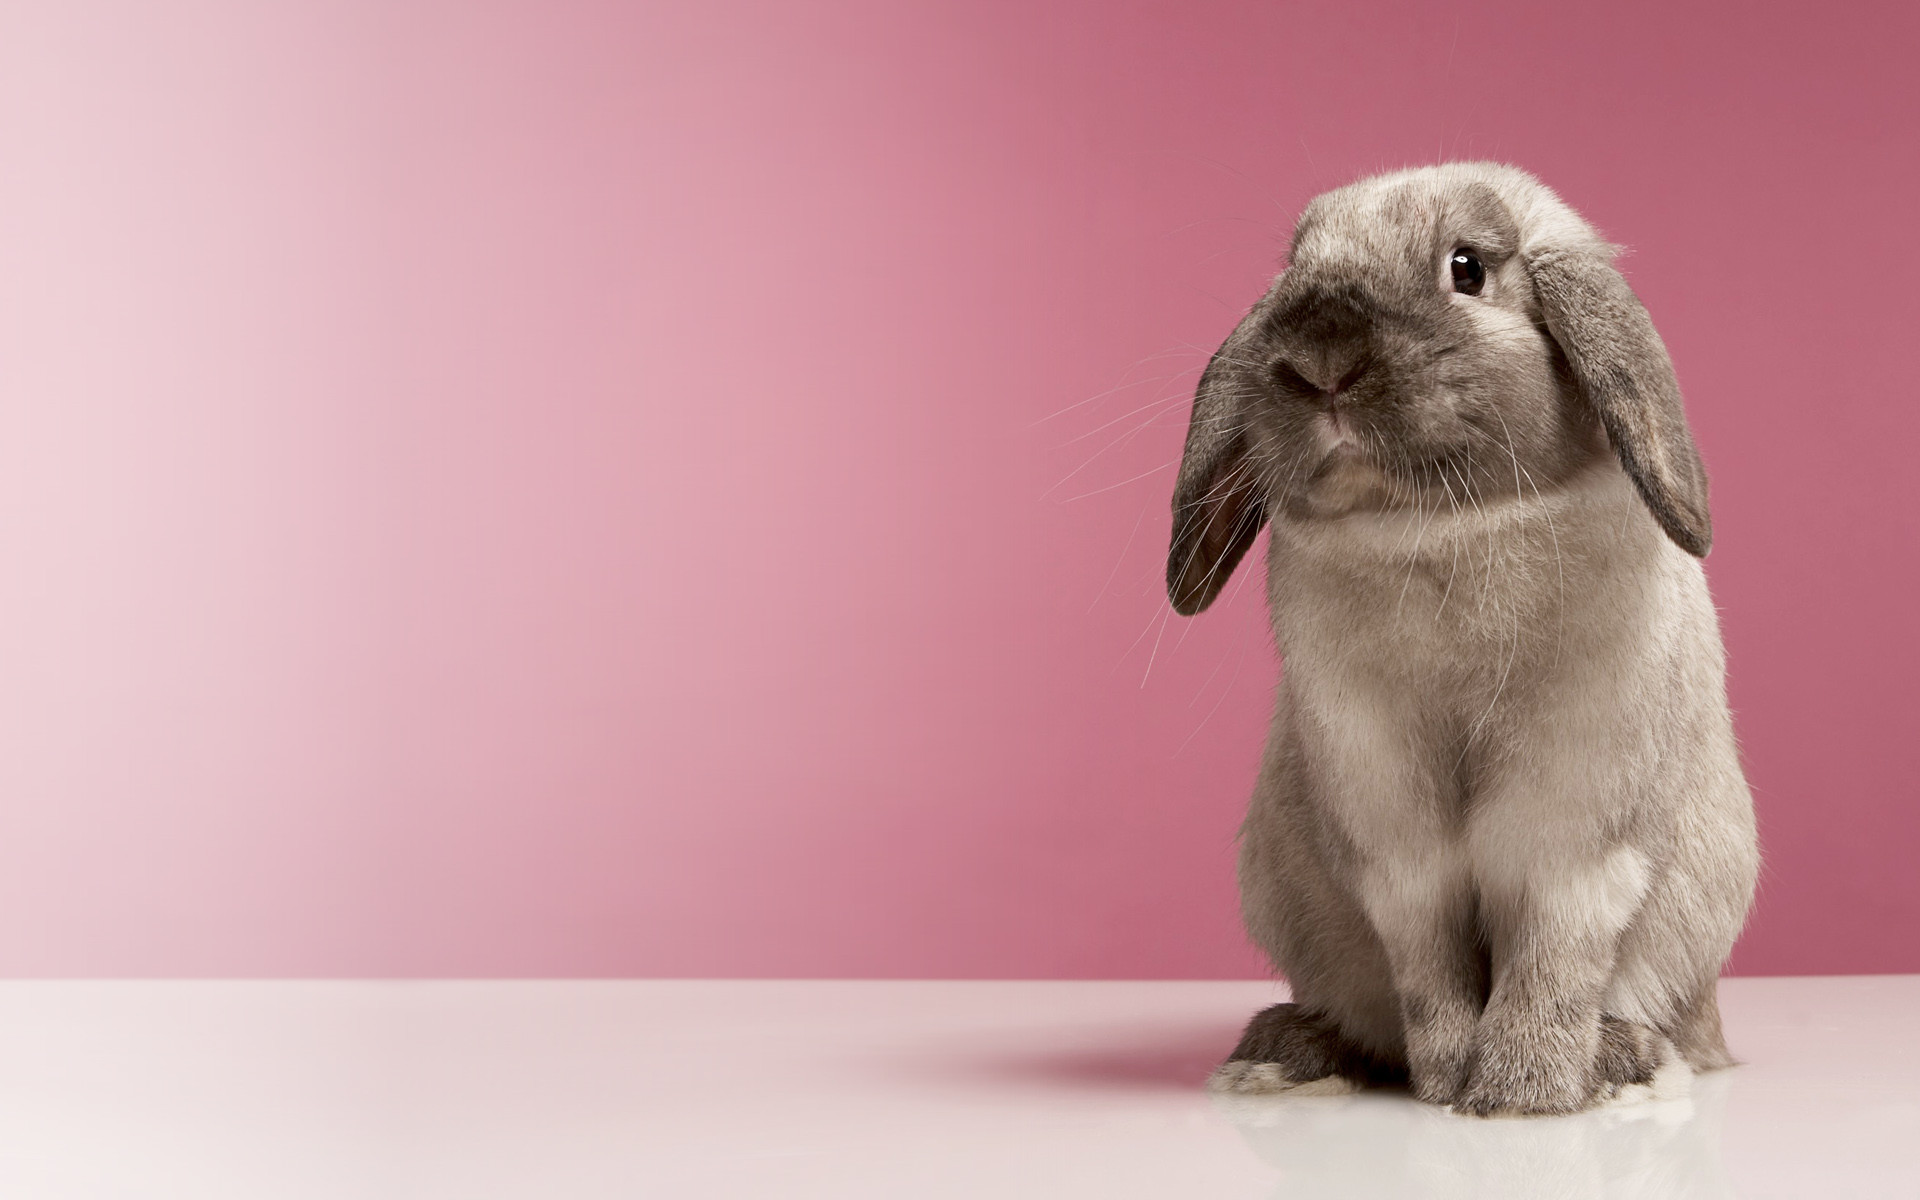 Chinese New Year images bunnies HD wallpaper and background photos